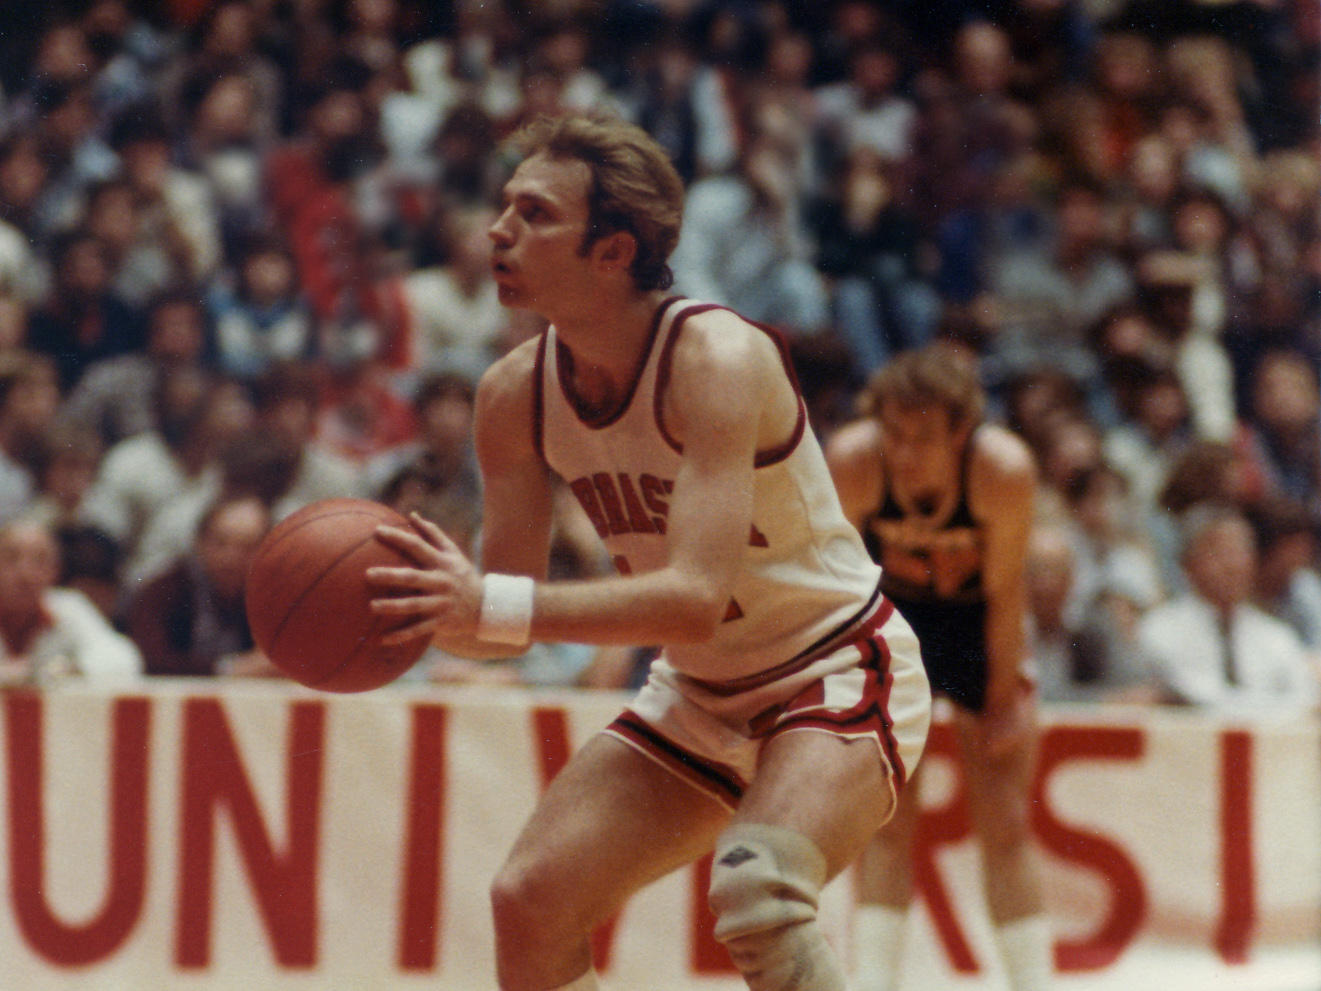 Jack Moore, the Huskers' consensus All-Big Eight point guard, Moore became the school's first three-time Academic All-Big Eight basketball player, won the 1982 Francis Pomeroy-Naismith Award as the nation's most outstanding senior collegiate basketball player under 6 feet. Photo by Huskers.com